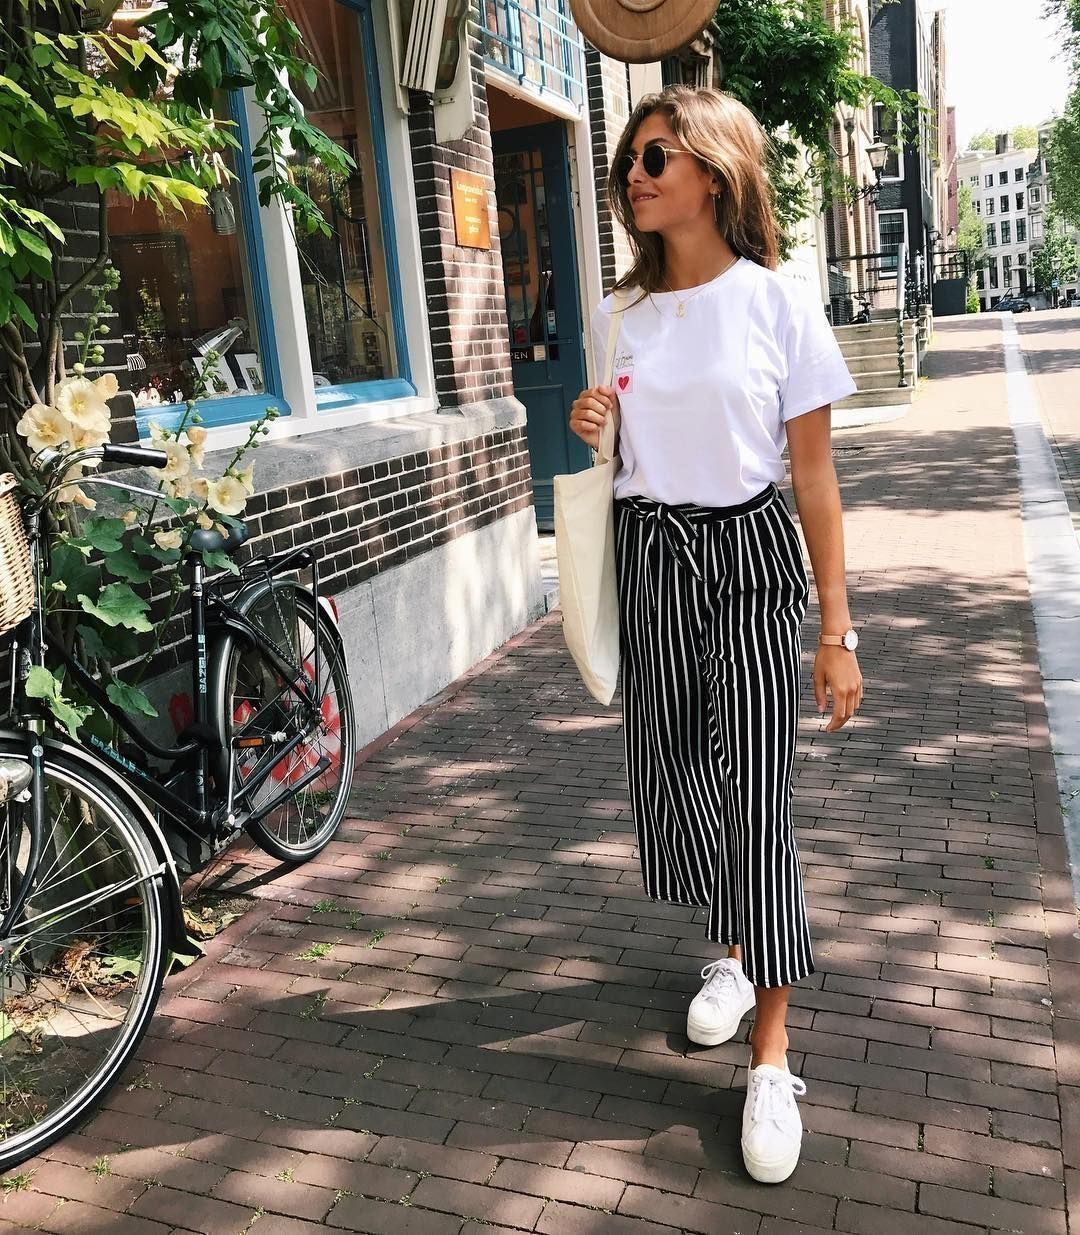 53 Amazing Spring Fashionable Outfits 2019 That Inspire